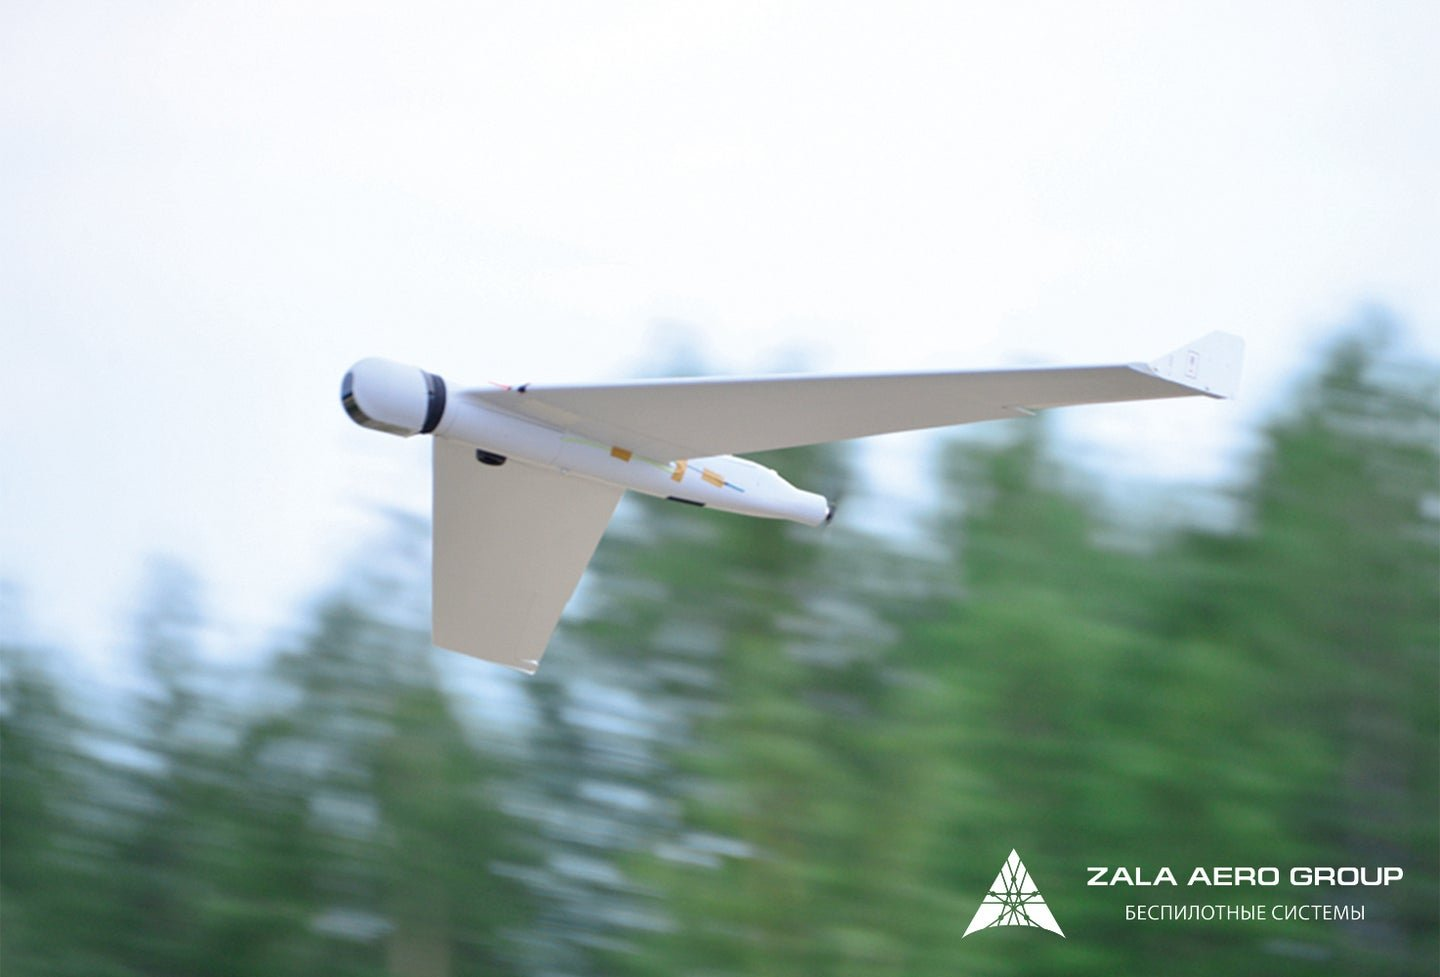 Heavy-lifting Russian drones could resupply soldiers on future battlefields